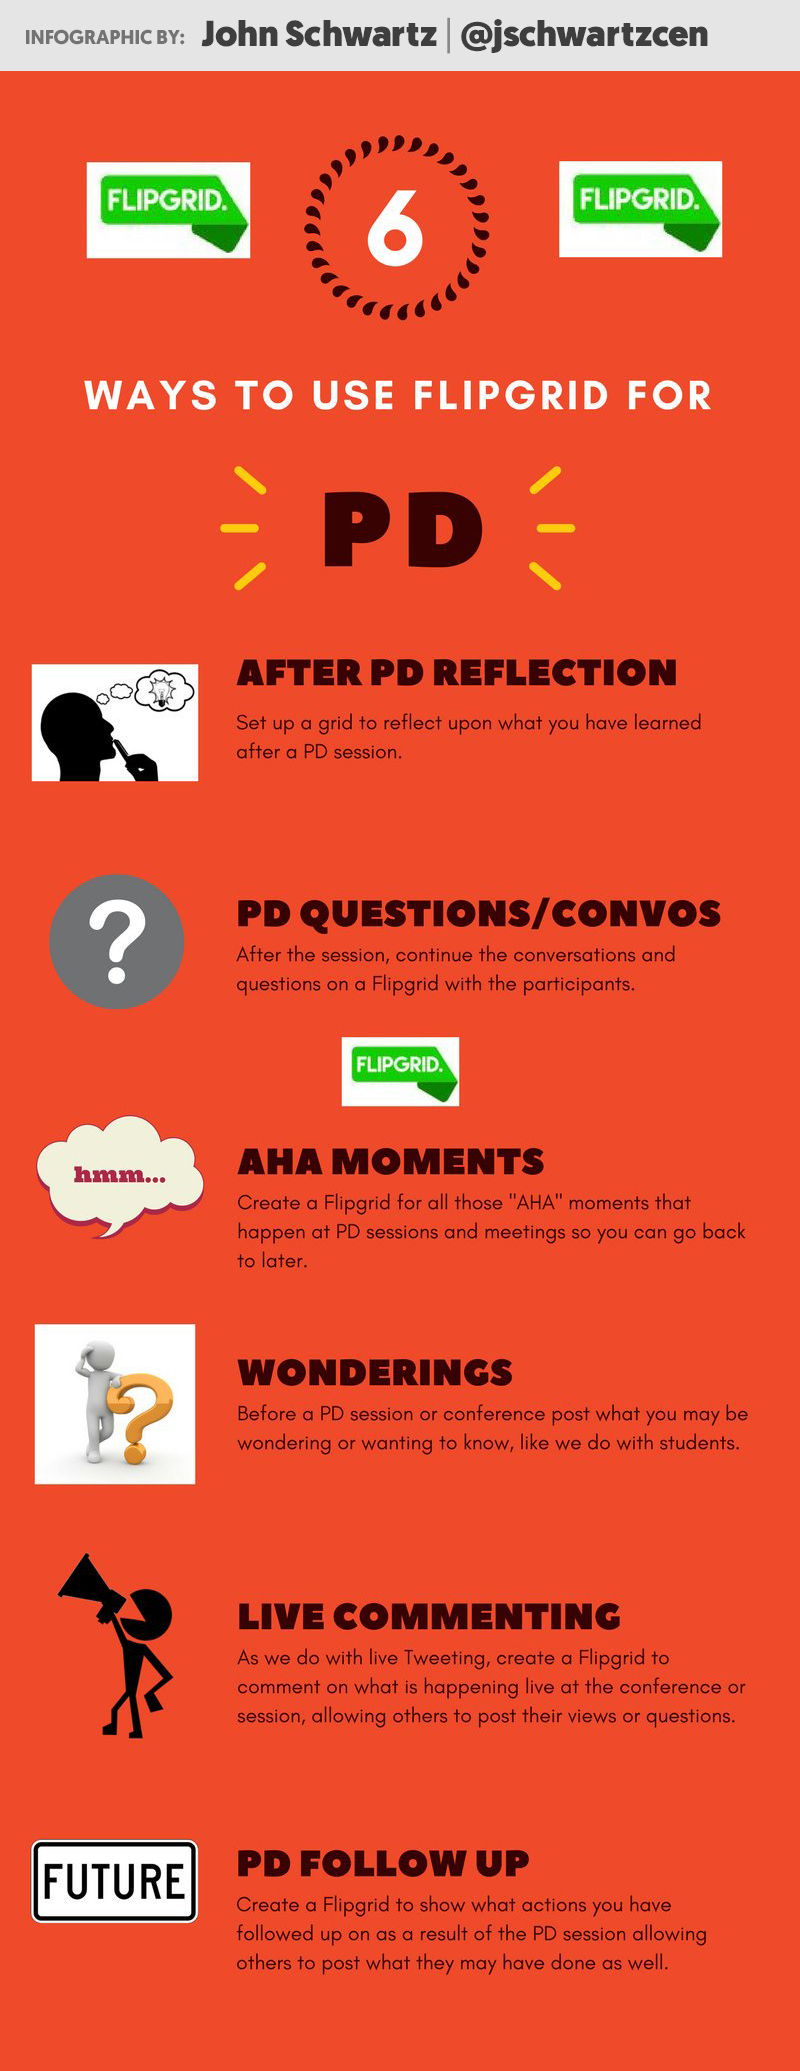 6 Ways to Use Flipgrid for Professional Development